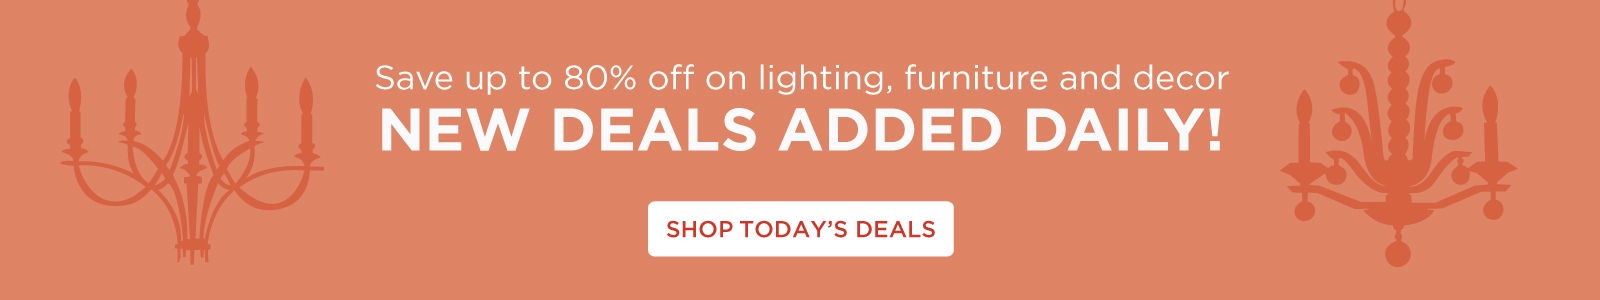 New Deals Added Daily! Shop Today's Deals.